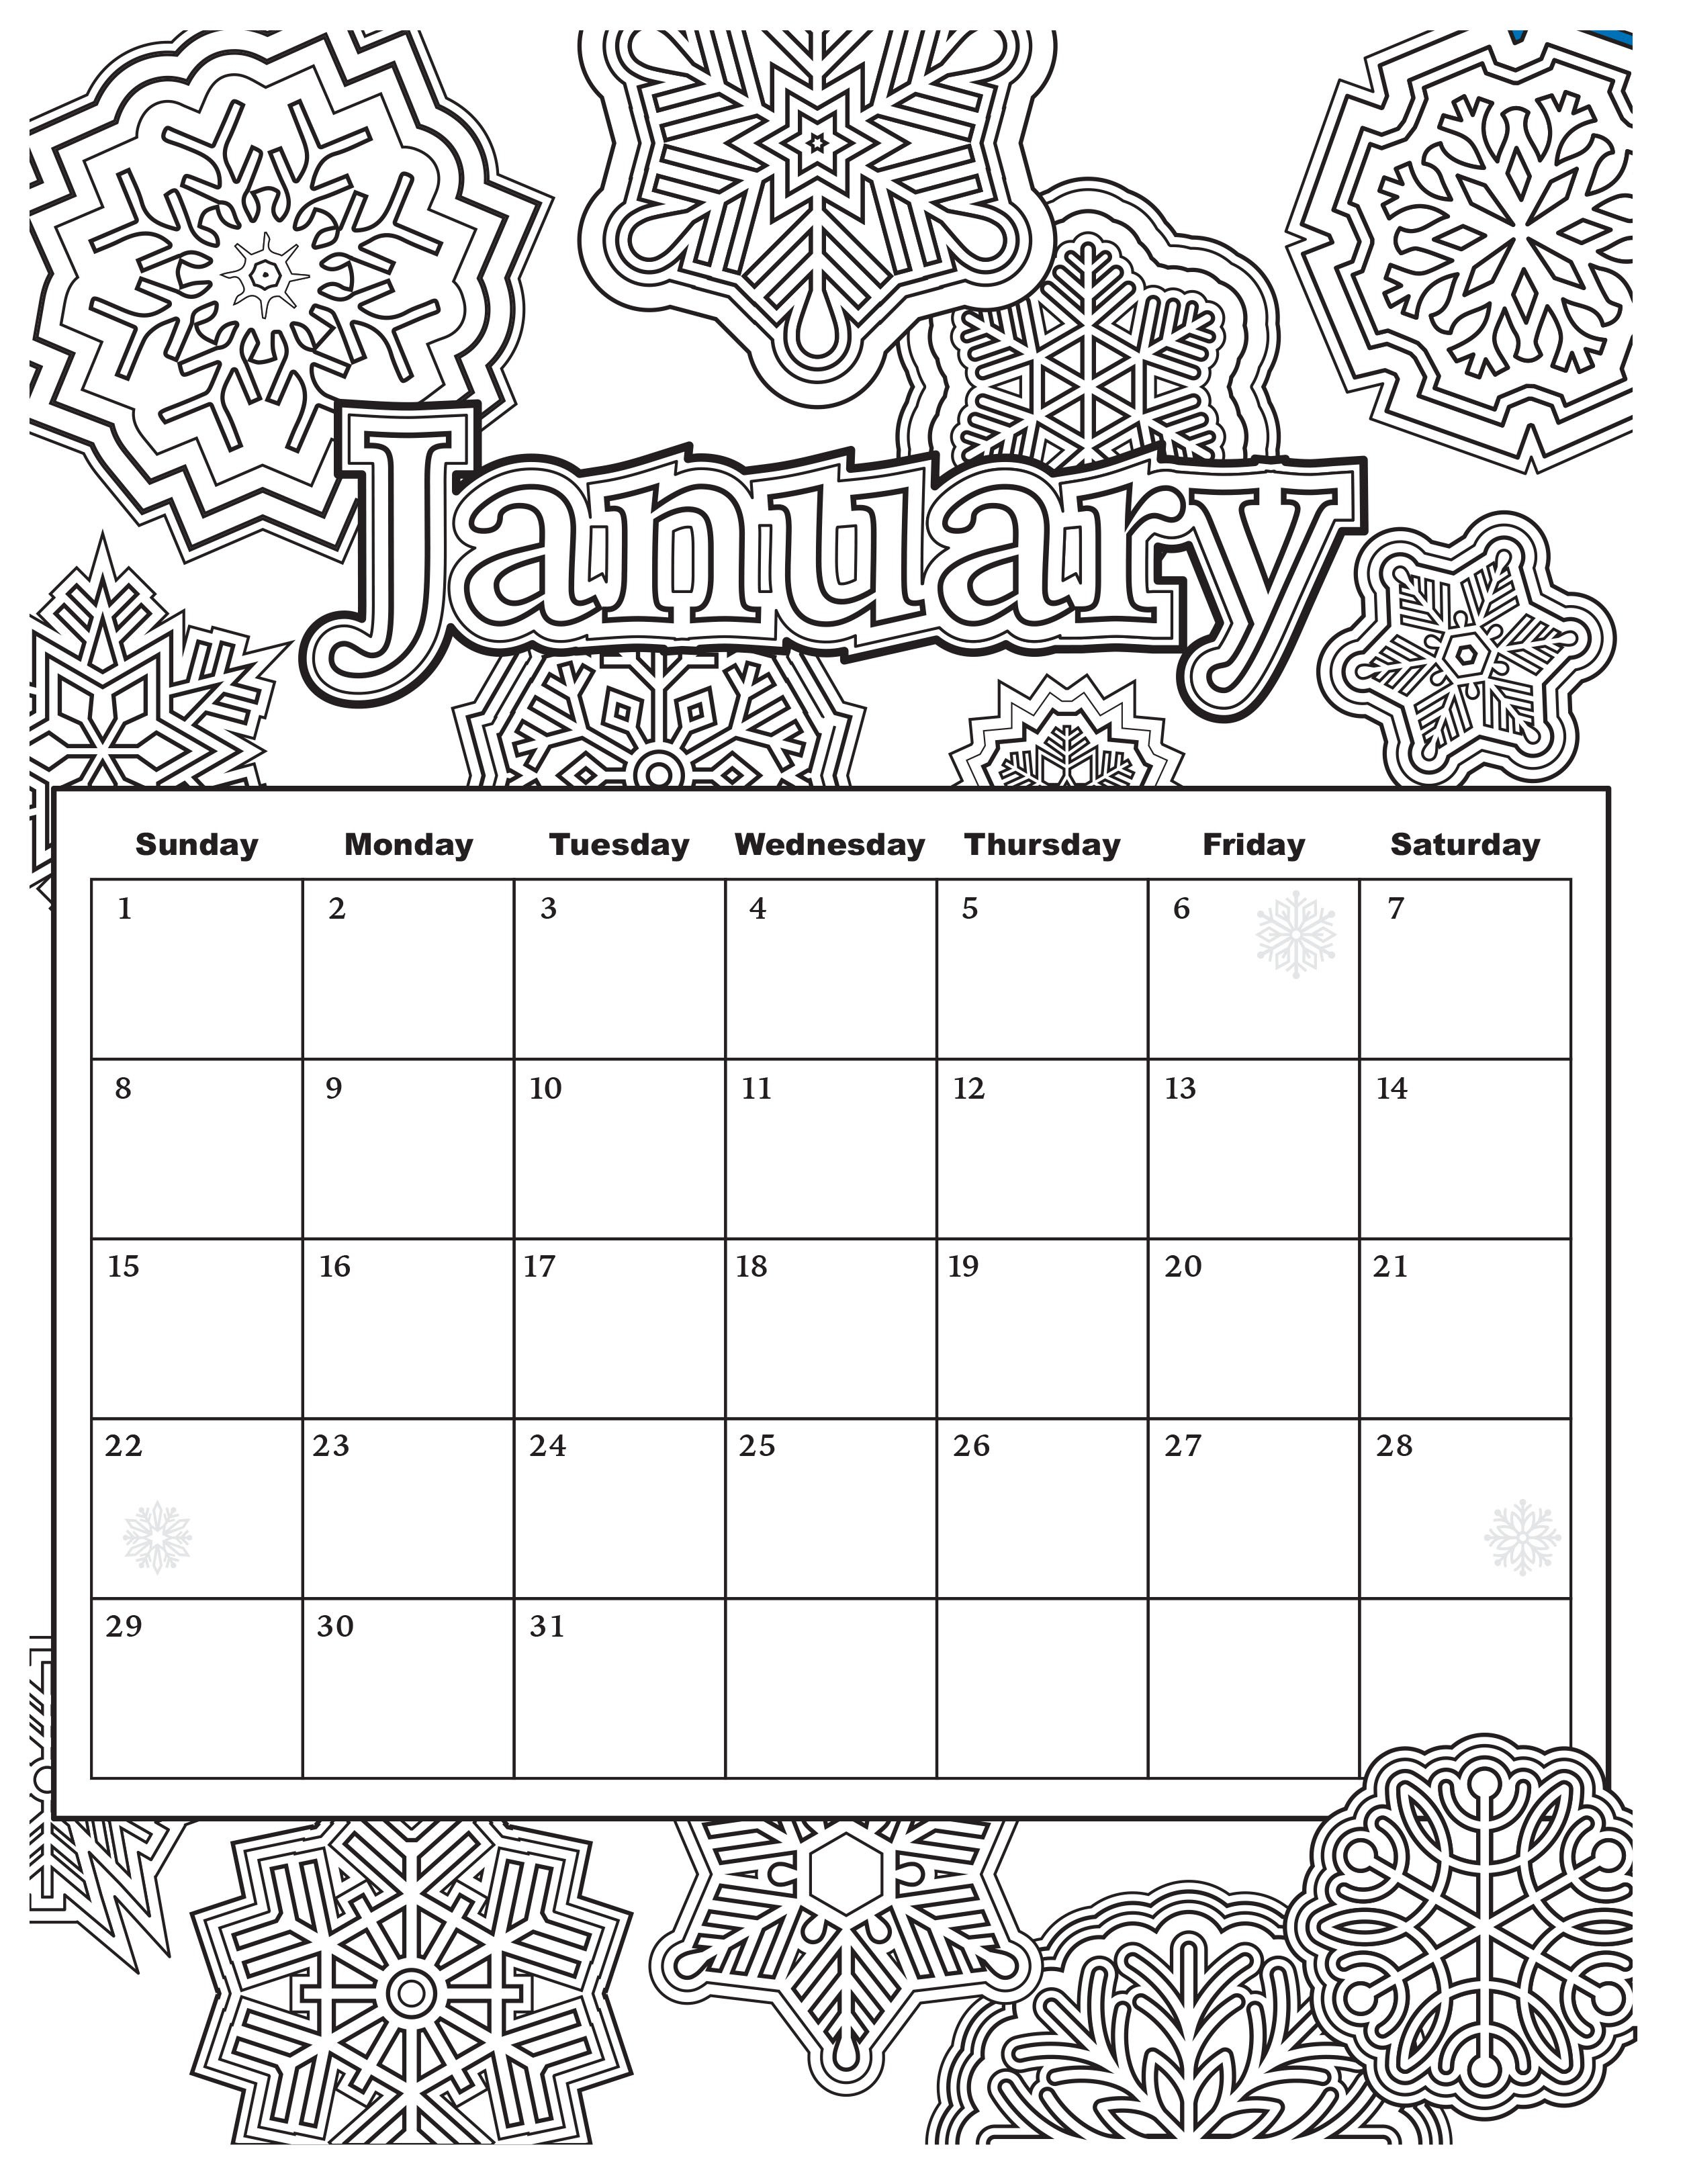 Adult Coloring Pages Free Download Coloring Pages From Popular Adult Coloring Books